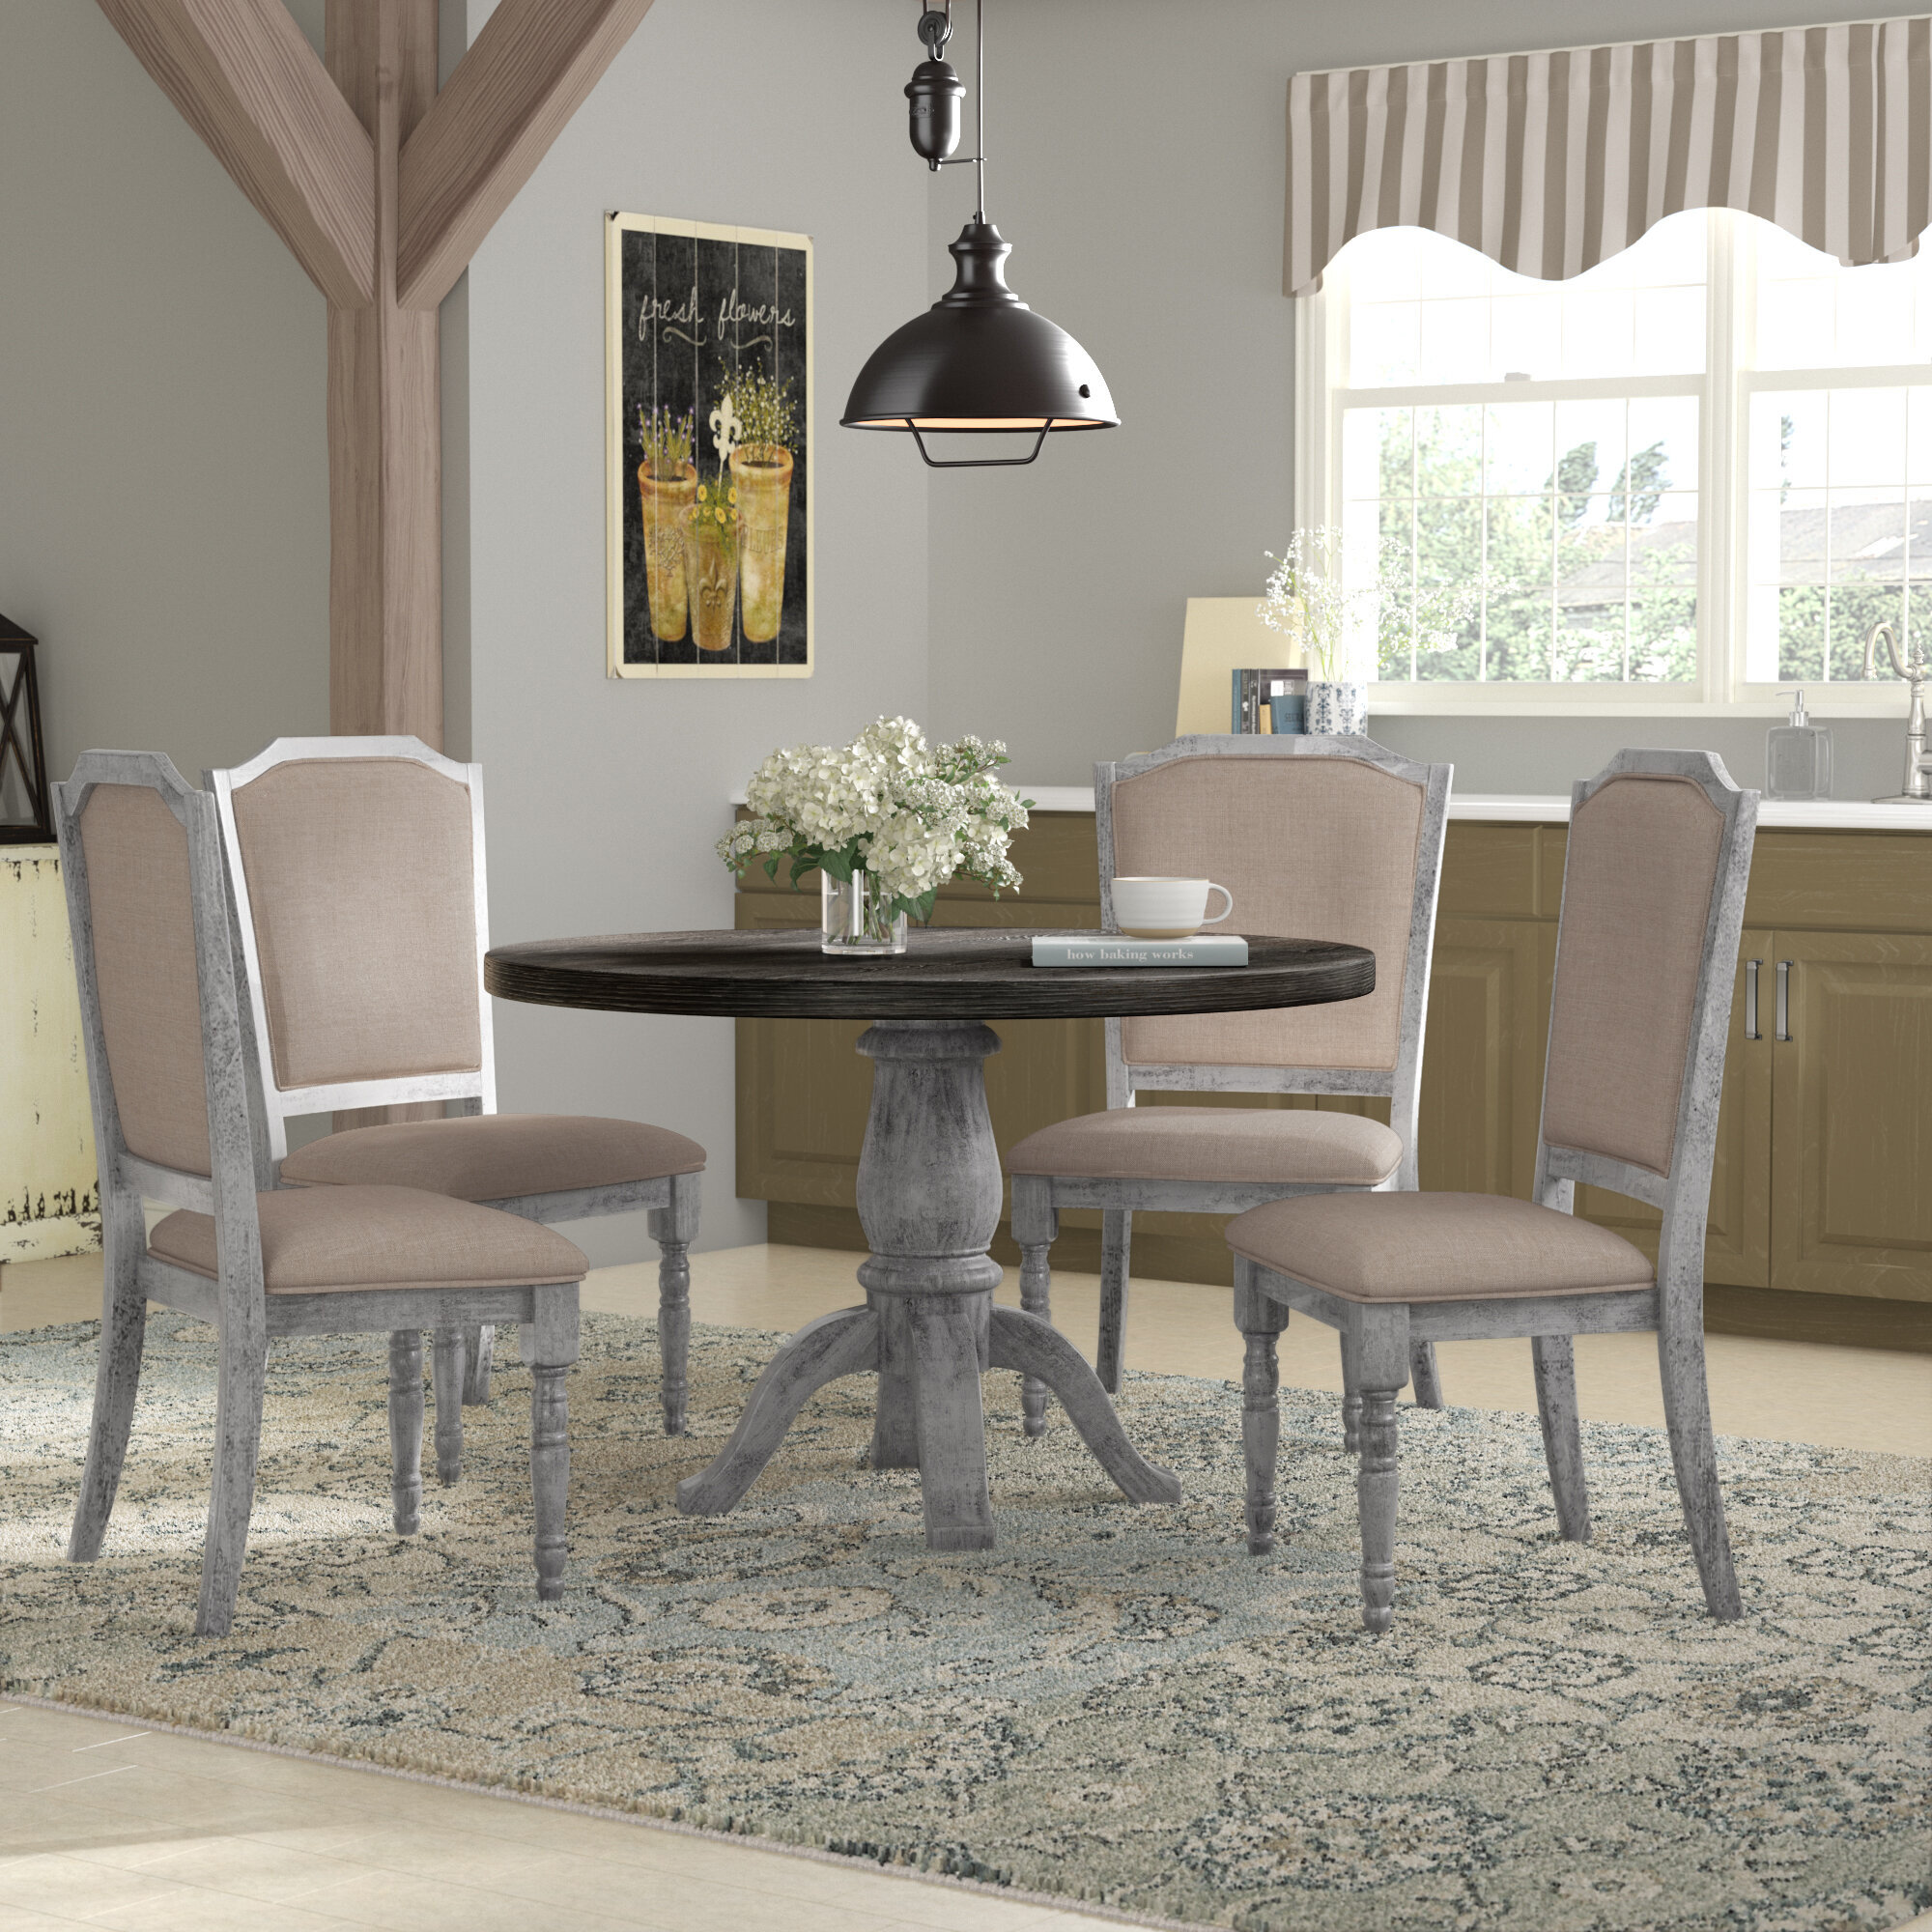 Image of: Cottage Country Kitchen Dining Room Sets You Ll Love In 2020 Wayfair